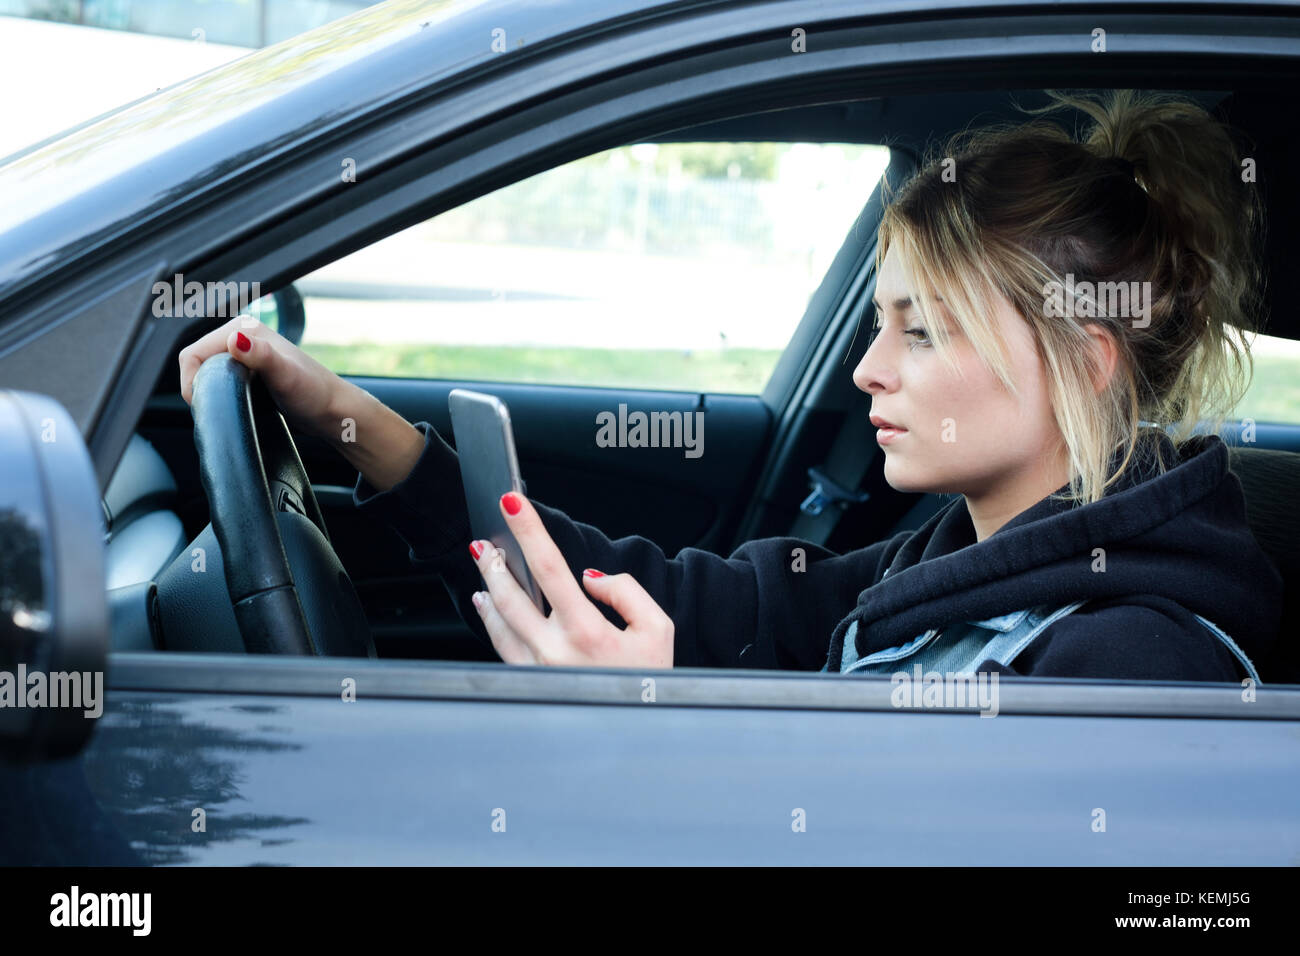 Girl driving car and texting on her smart phone - Stock Image